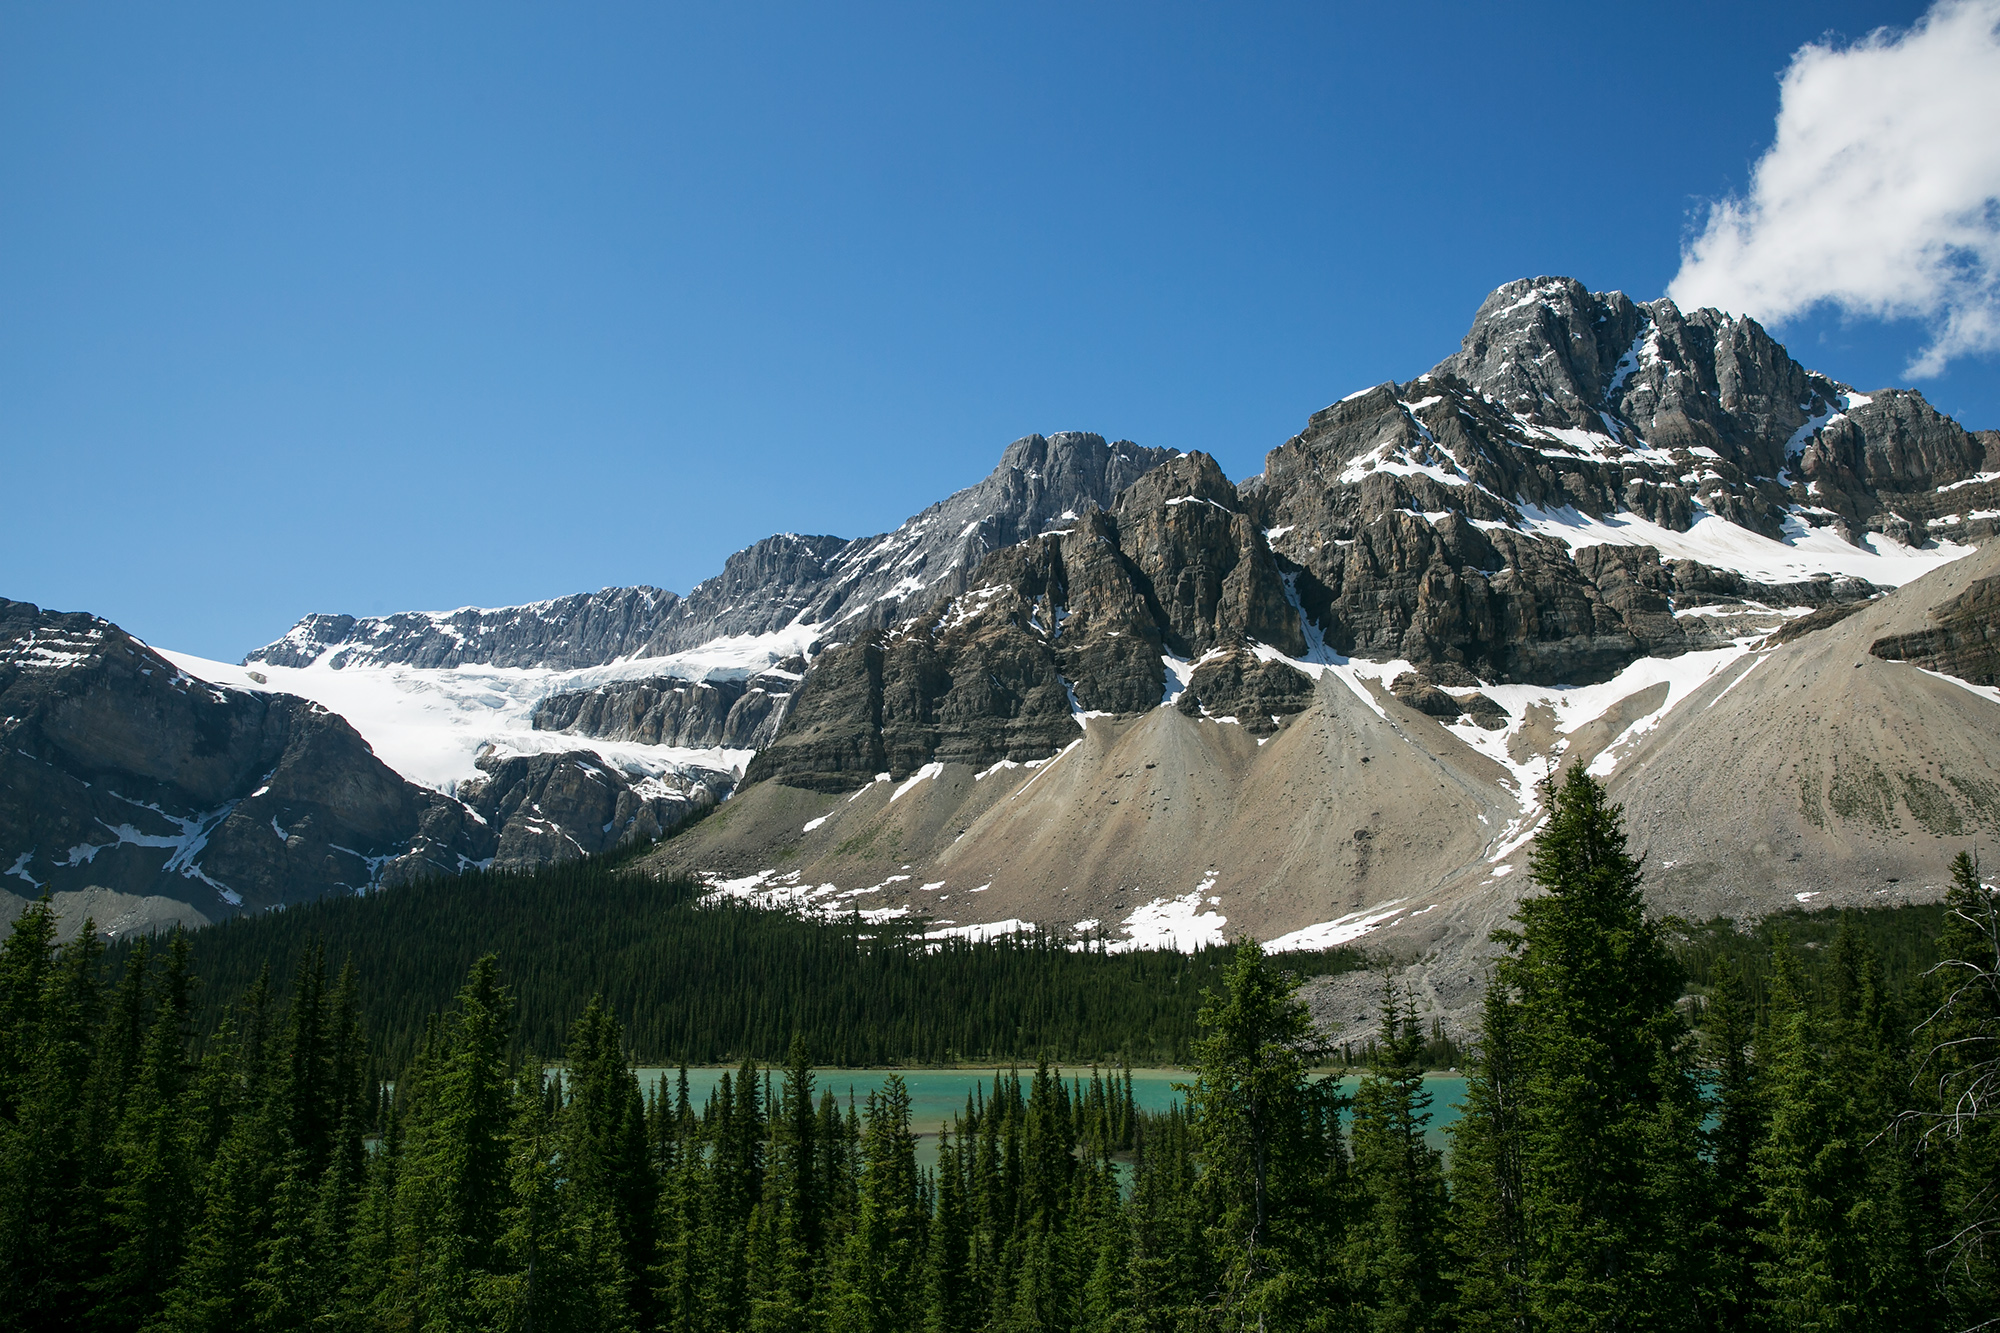 Spectacular views of rugged mountains along the Icefields Parkway in Banff National Park, Alberta.